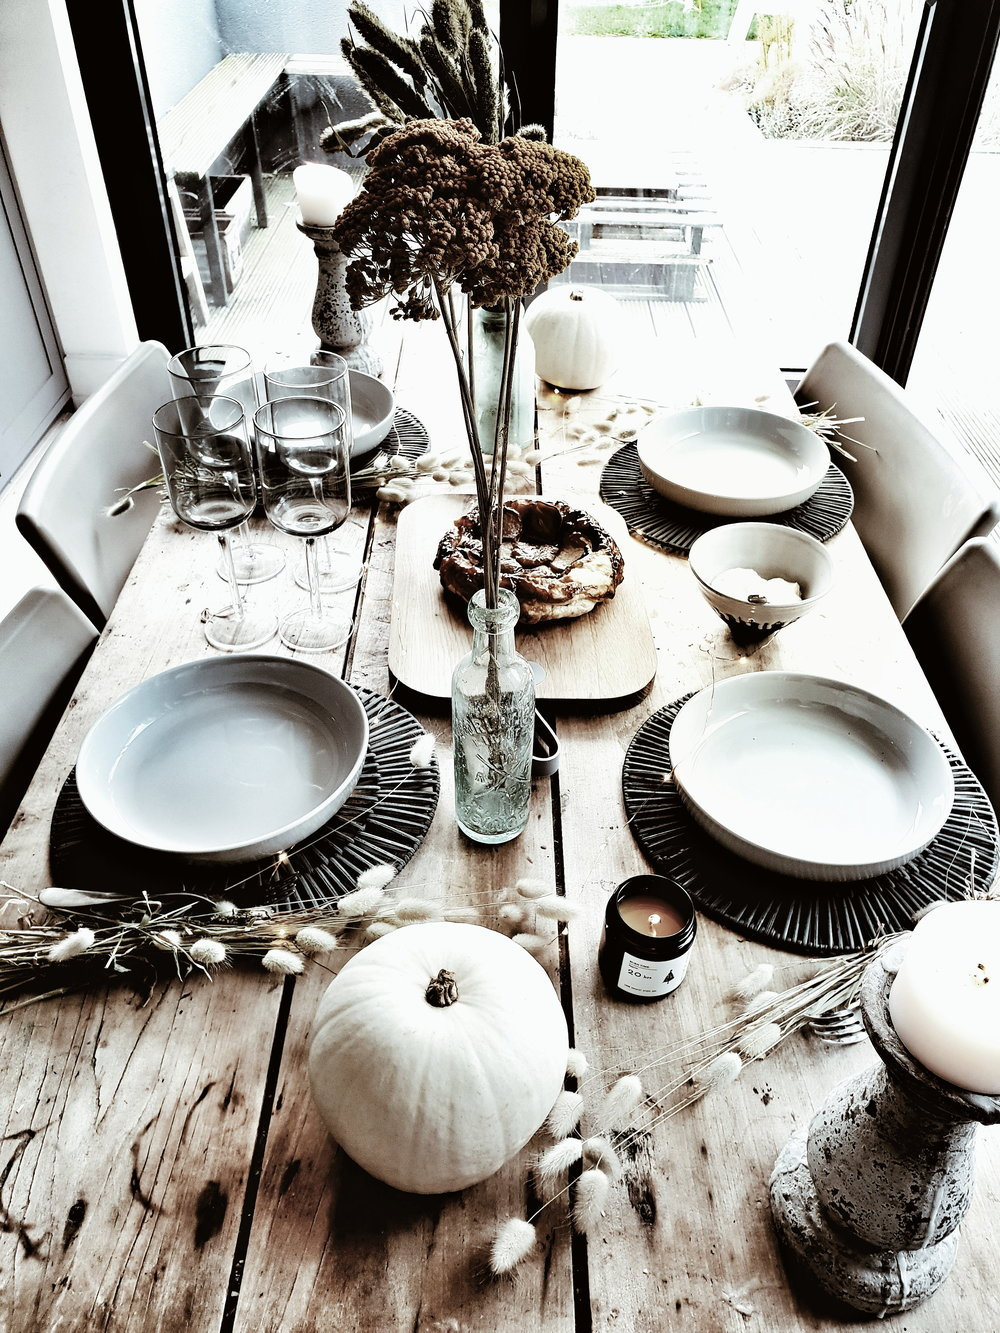 White pumpkins adding a modern rustic touch to the table